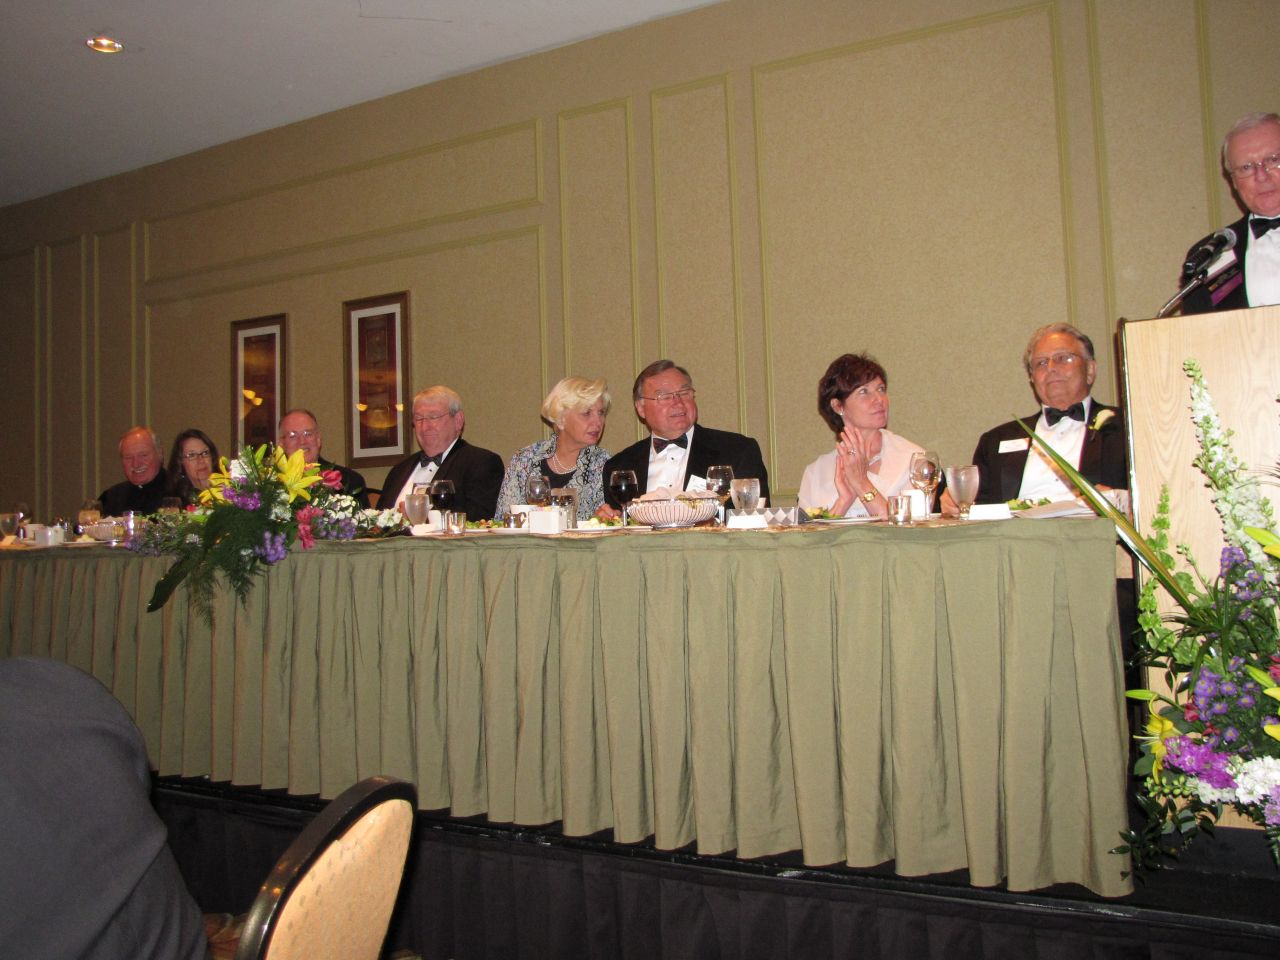 Head table (left)